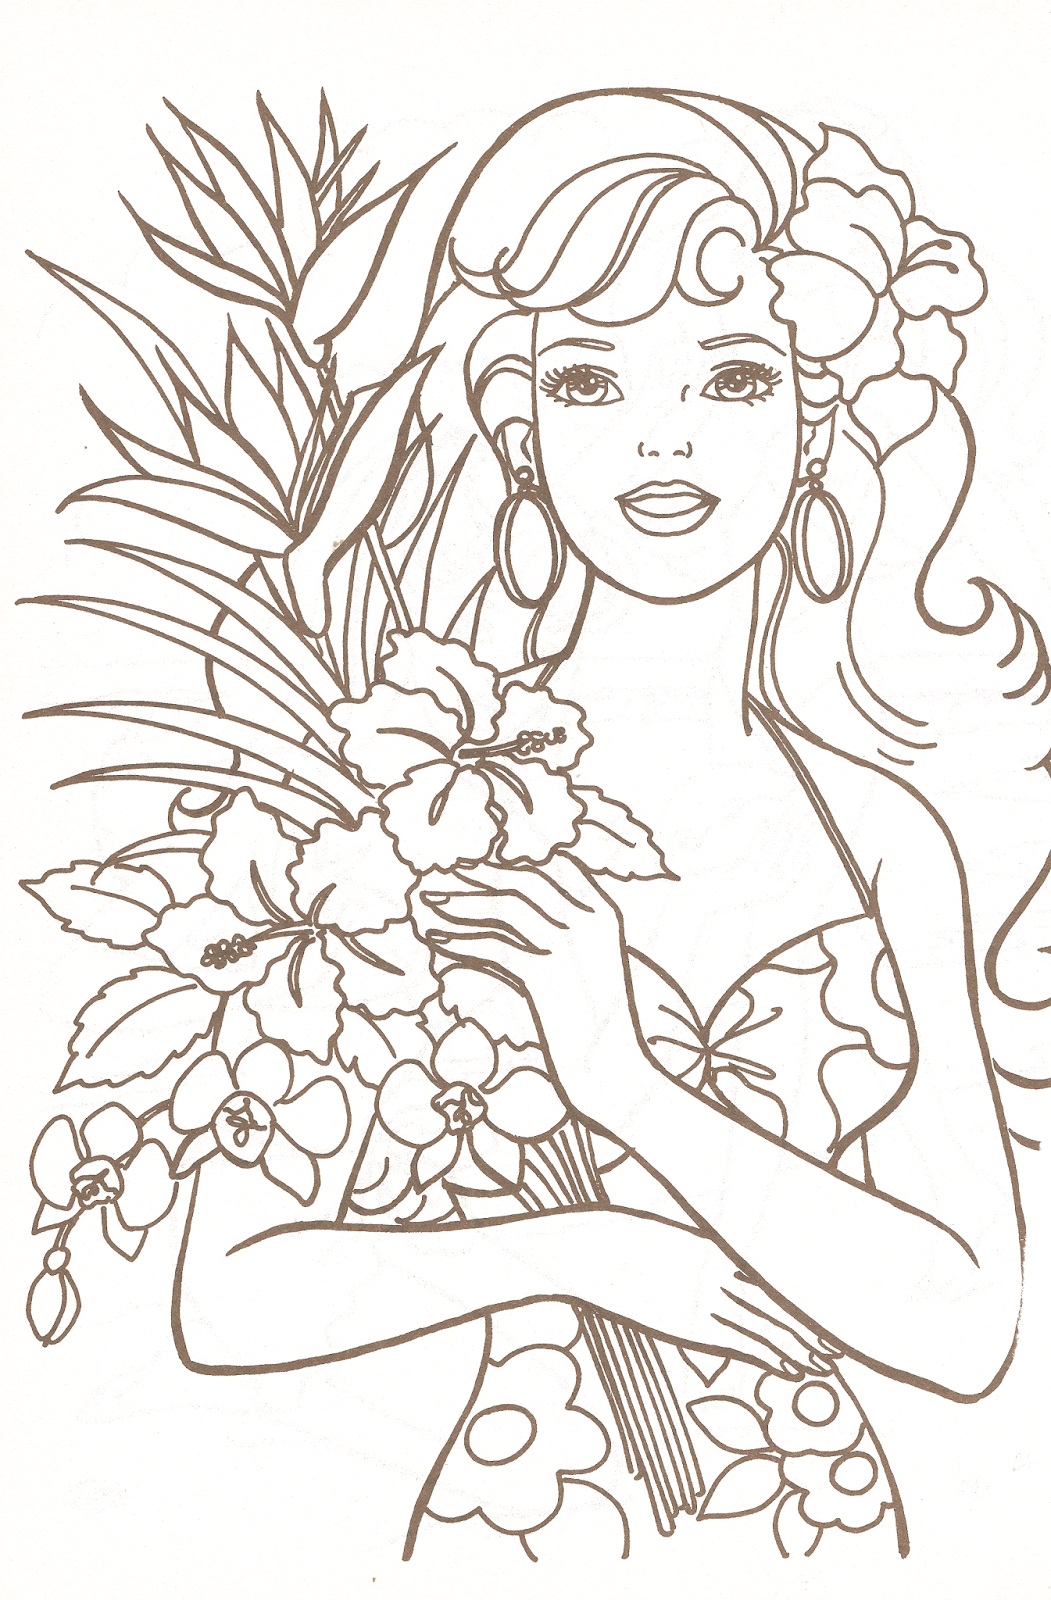 Barbie Coloring Pages Part 1 | Barbie coloring, Dolls and Coloring books